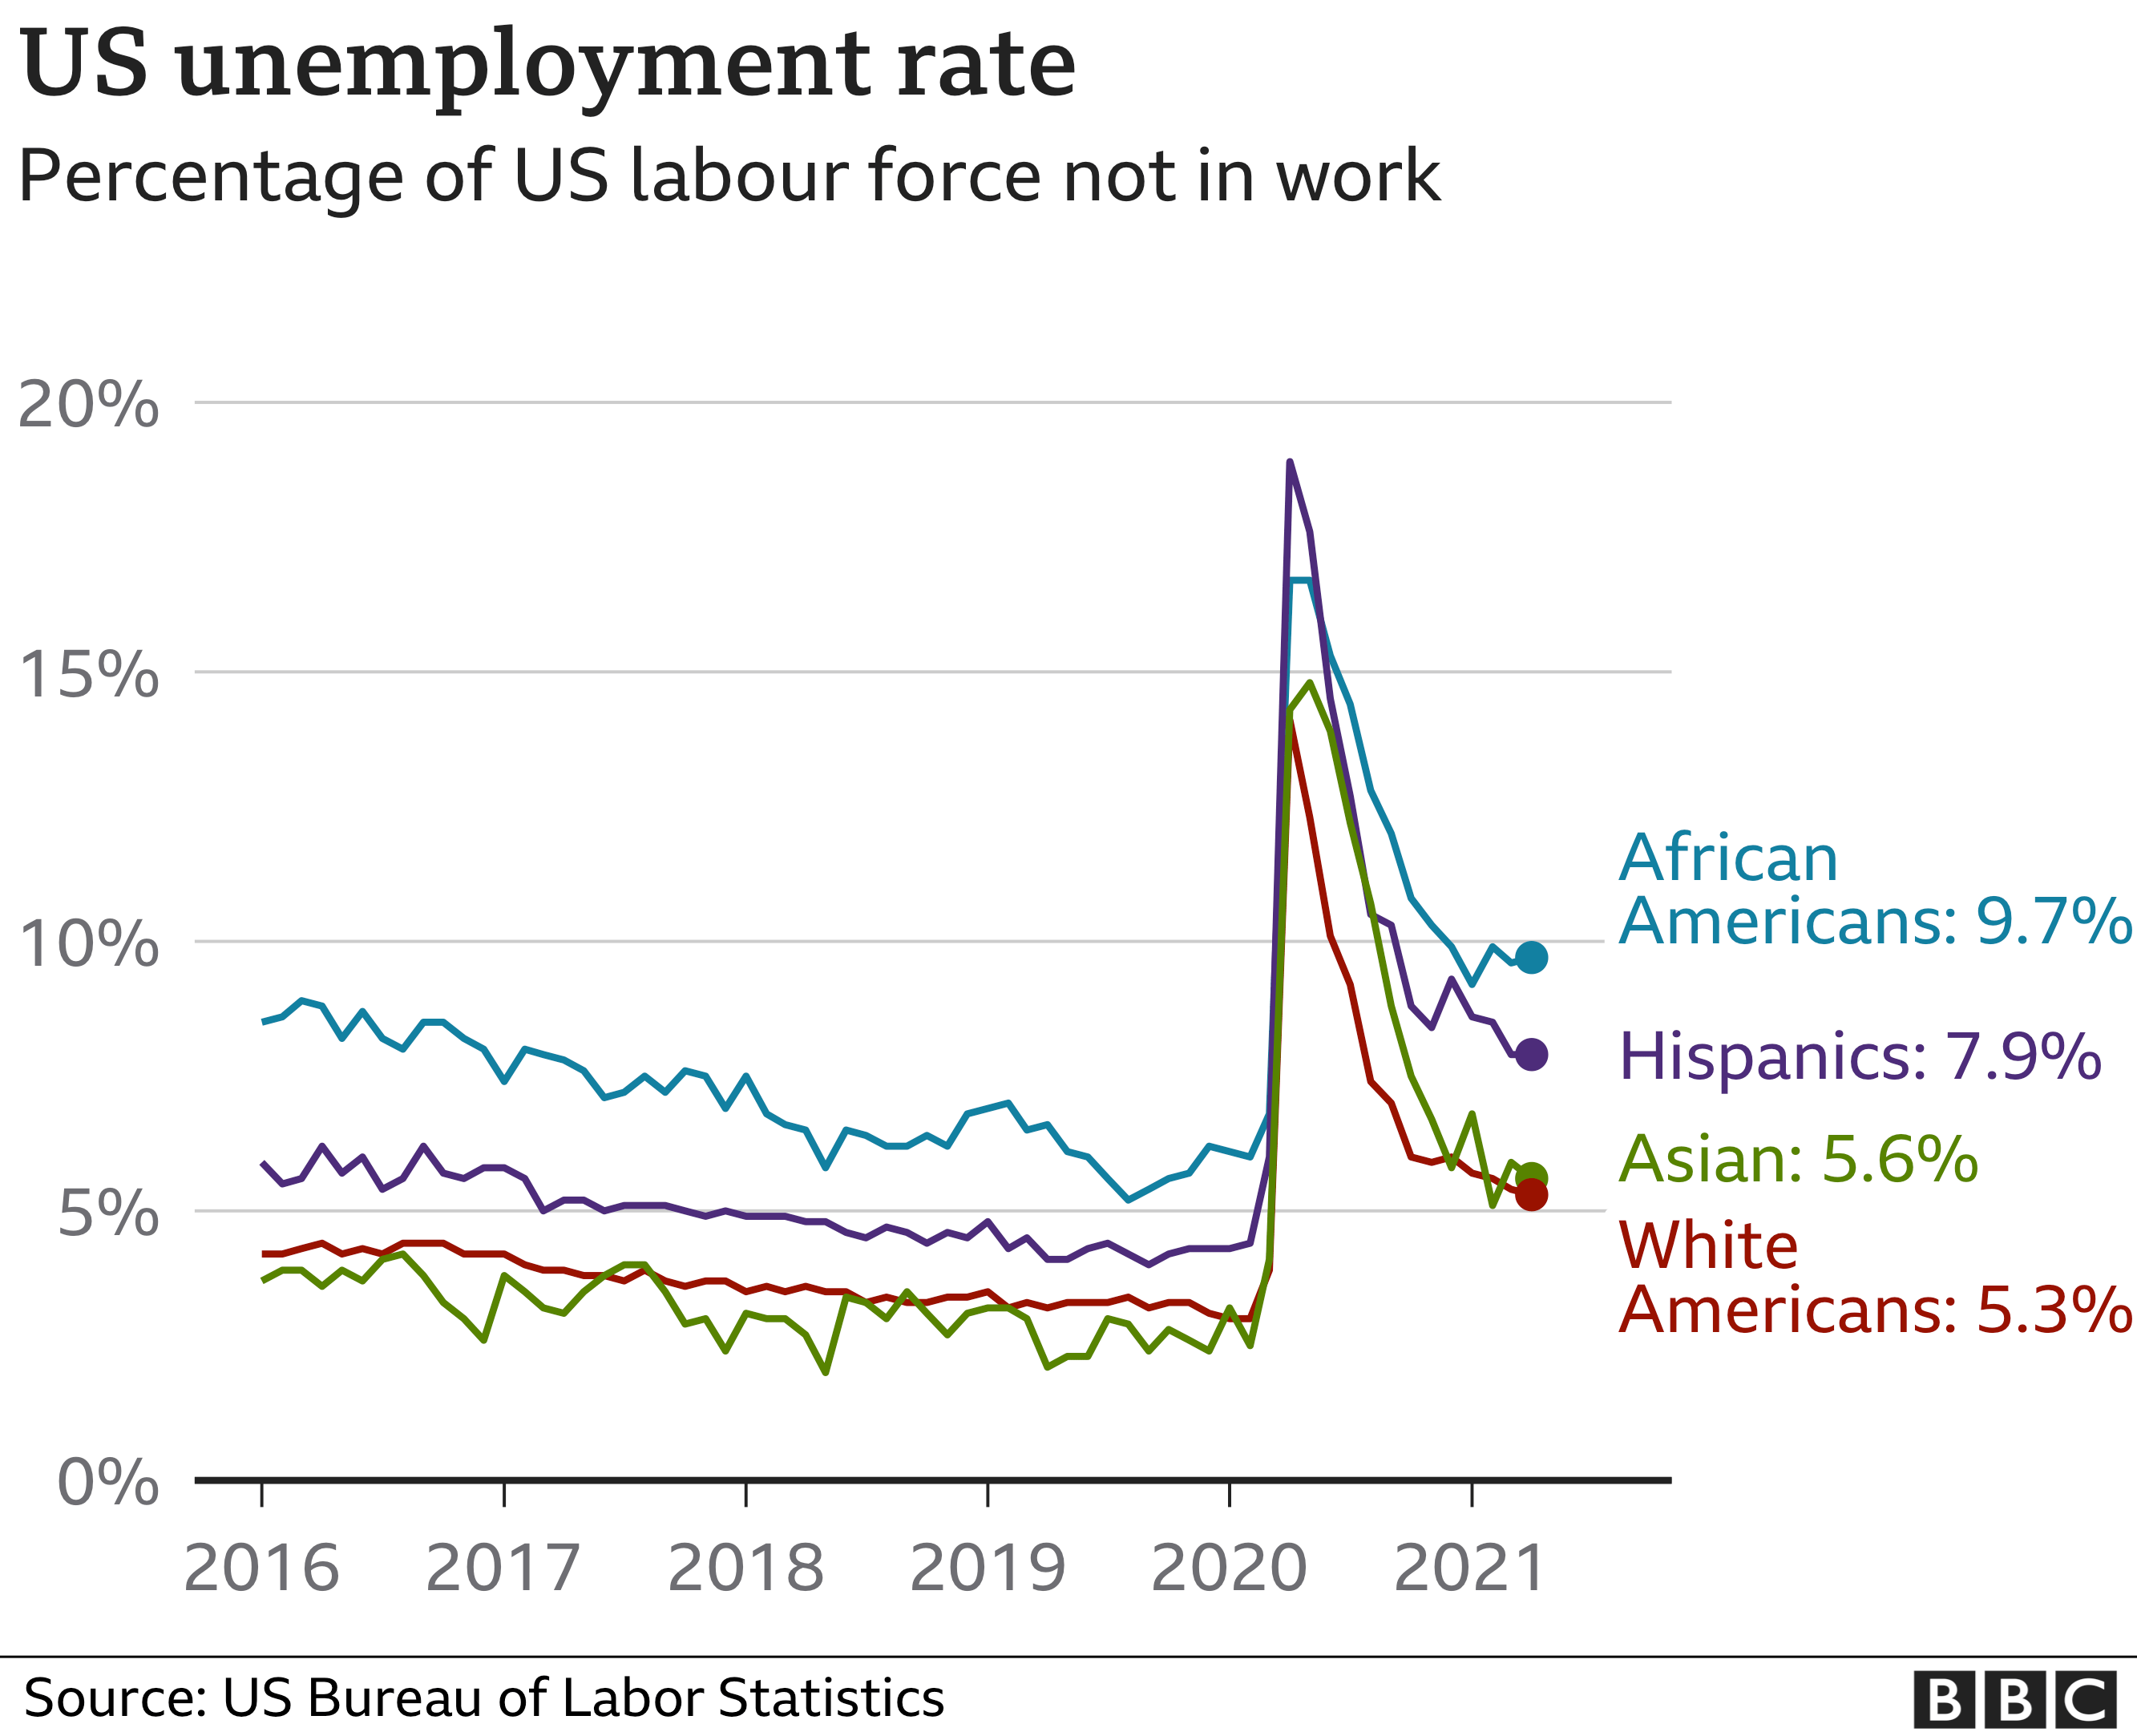 The unemployment rate for African Americans has not fallen fast as it has for white Americans